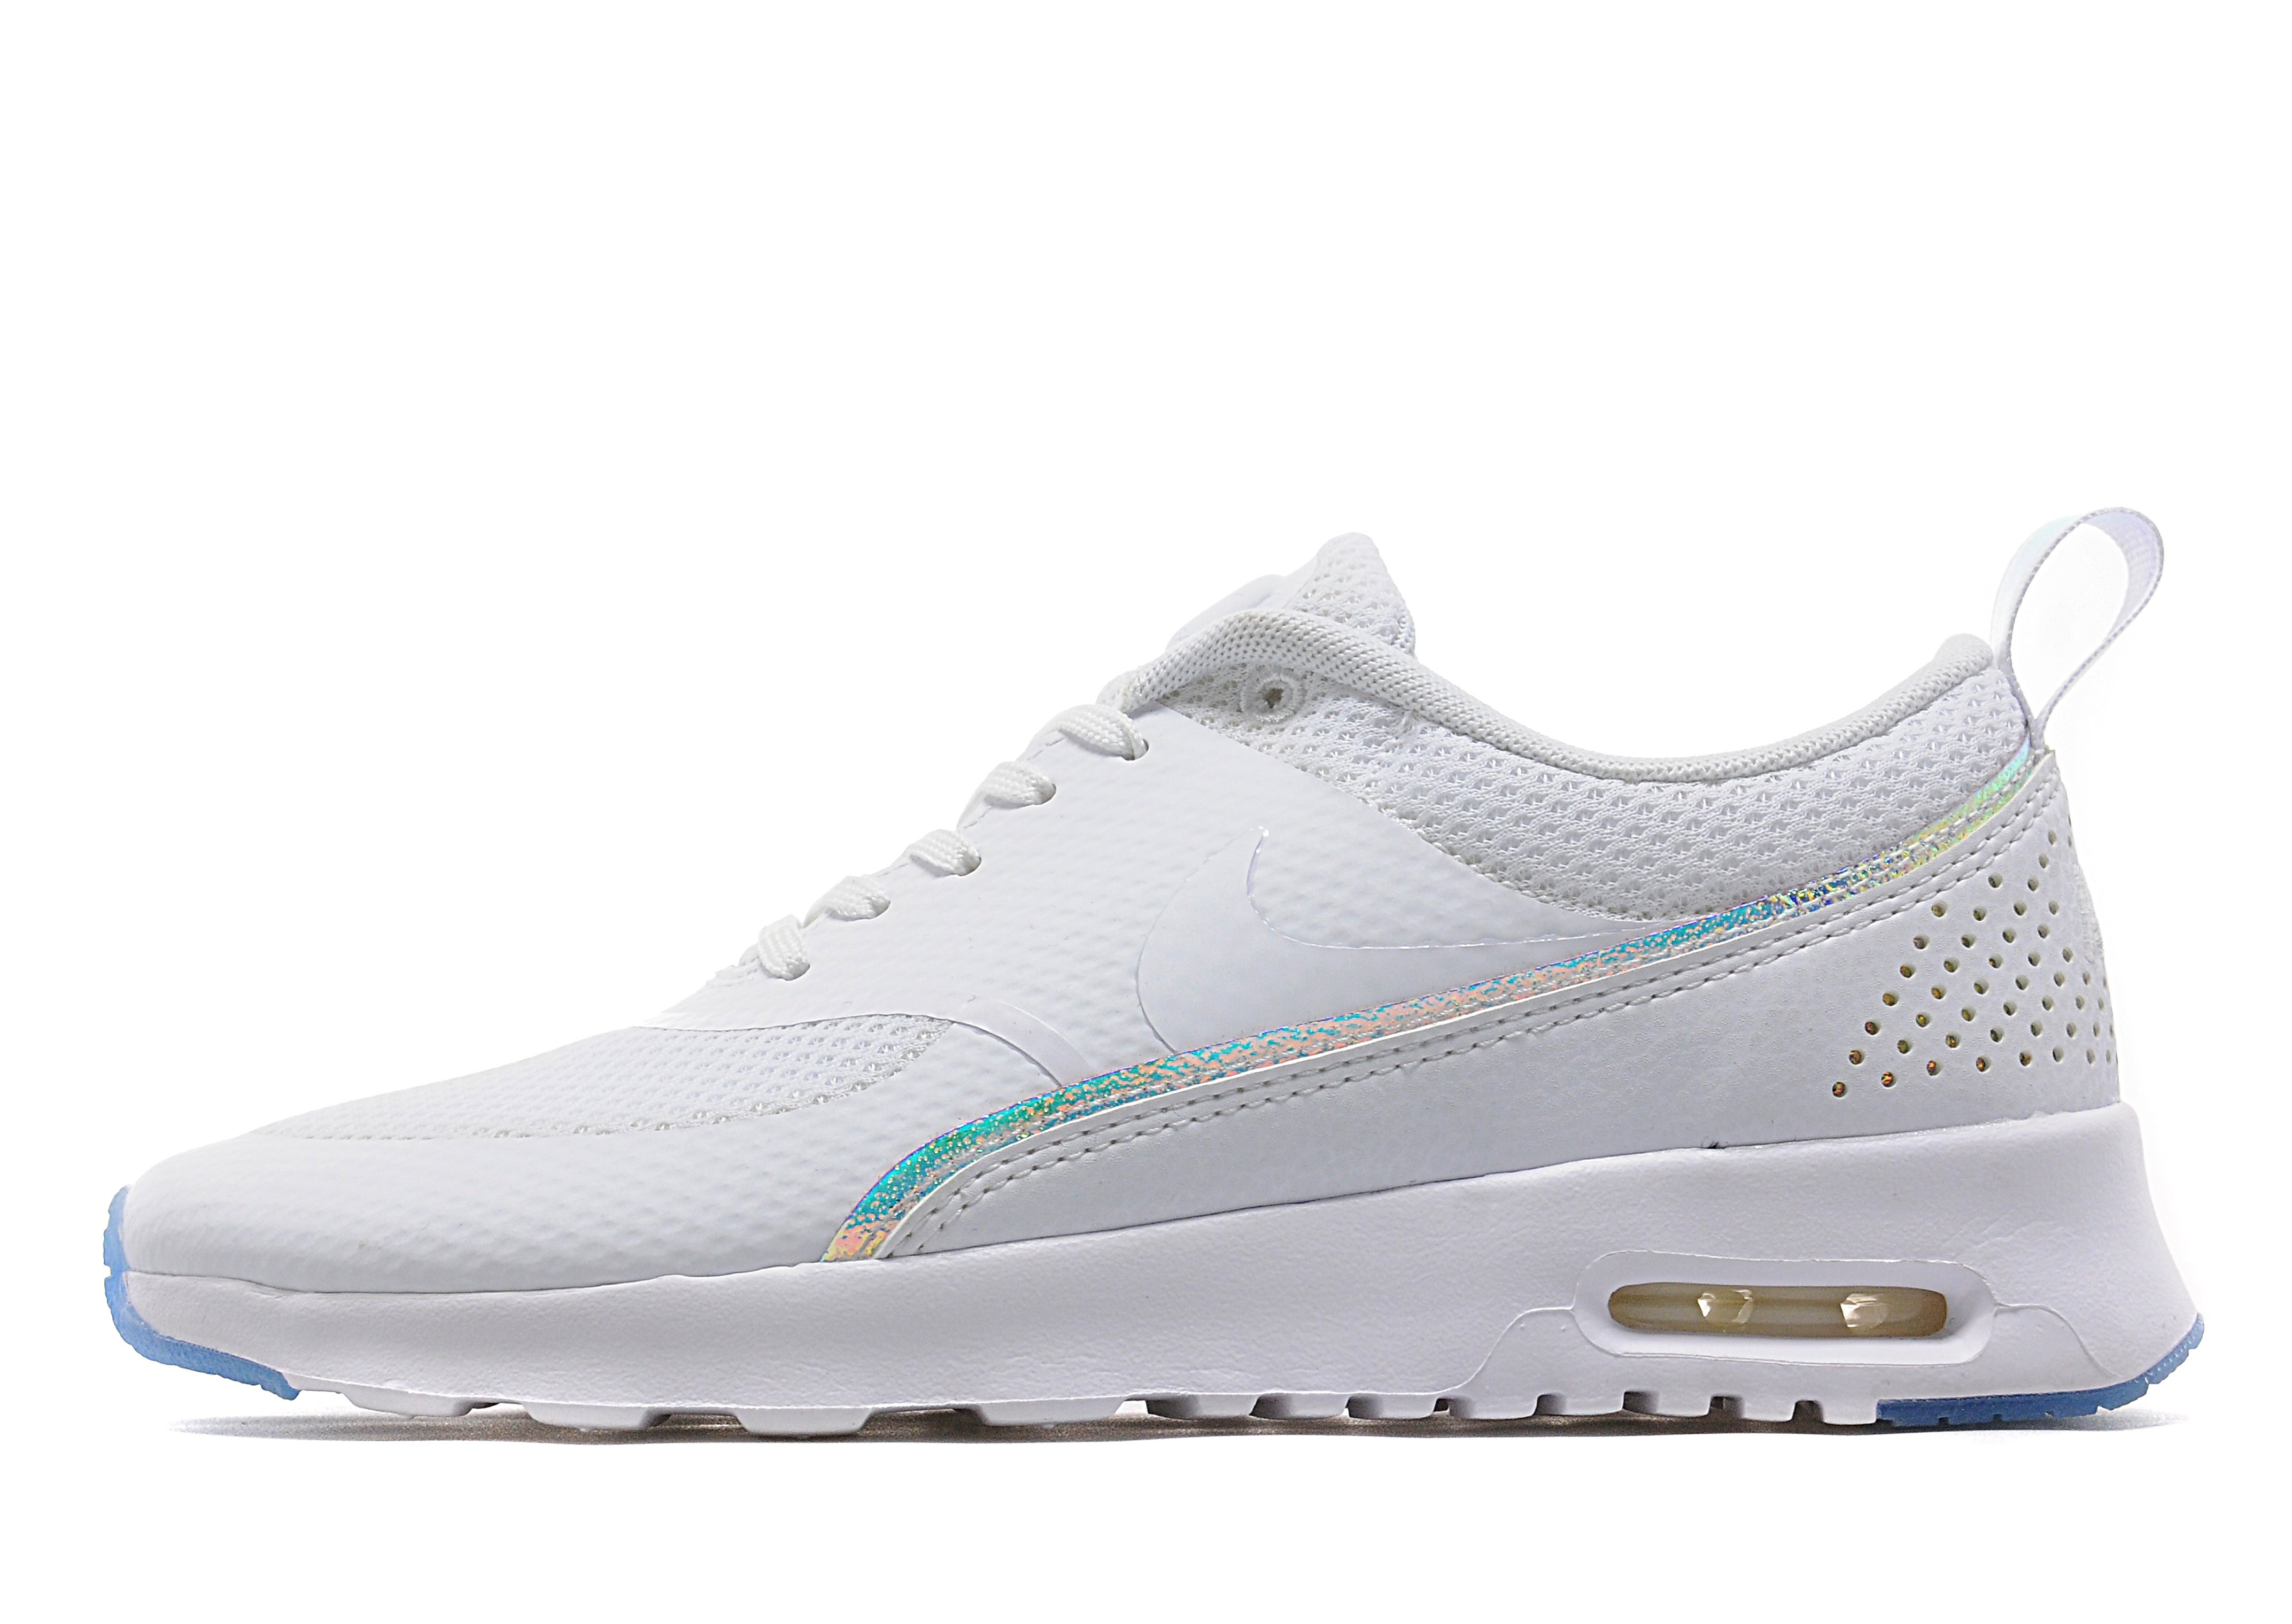 Nike Air Max Thea Premium Women's